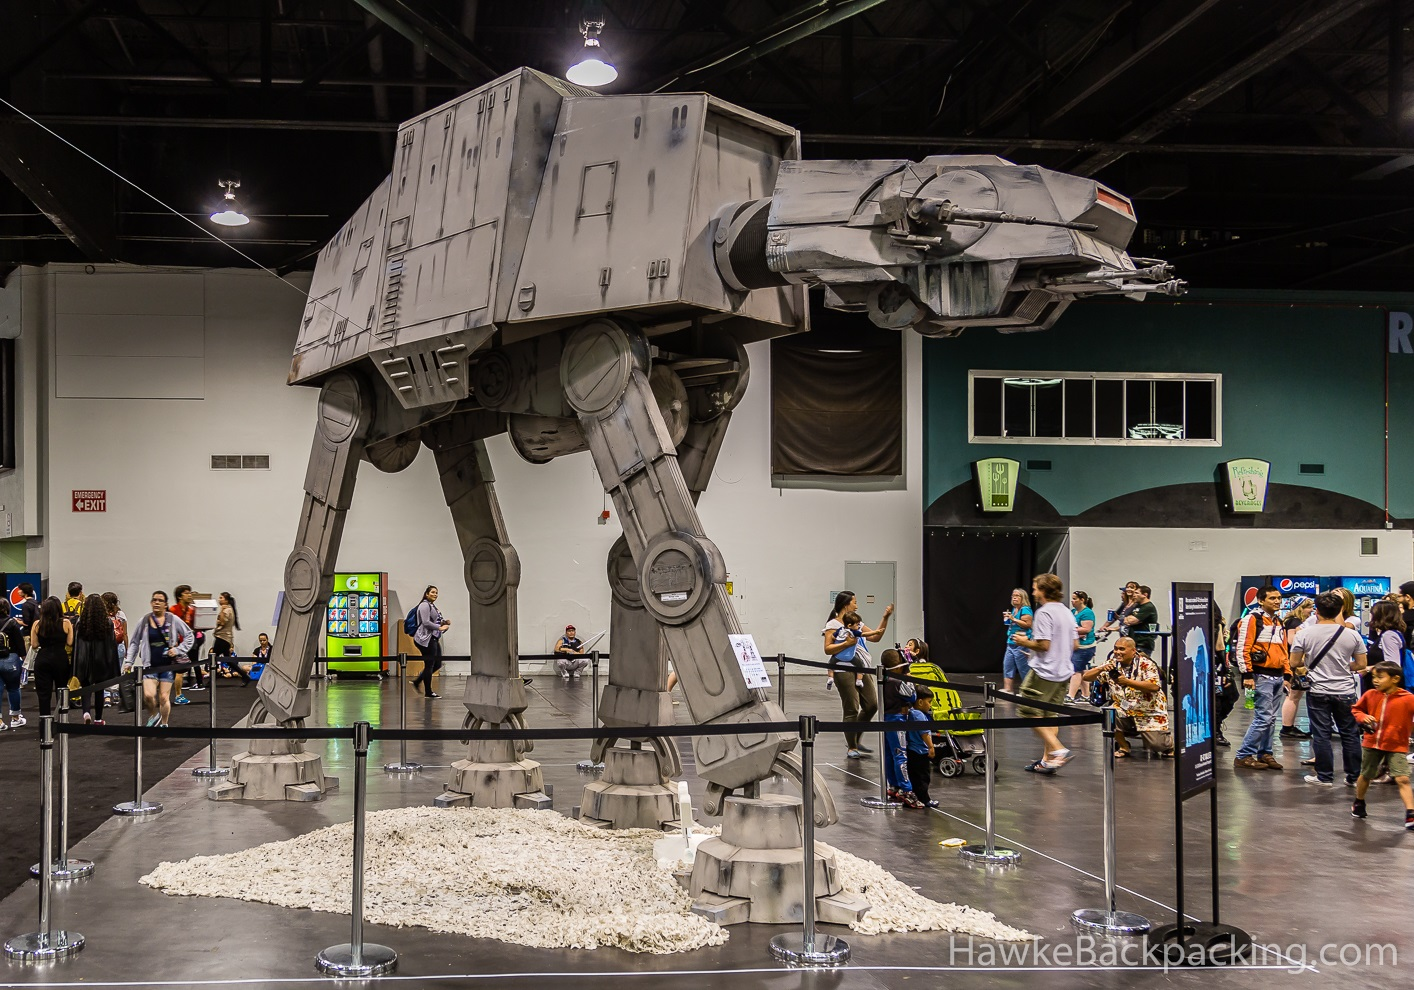 Star wars exhibit california pictures to pin on pinterest for Star wars museum california